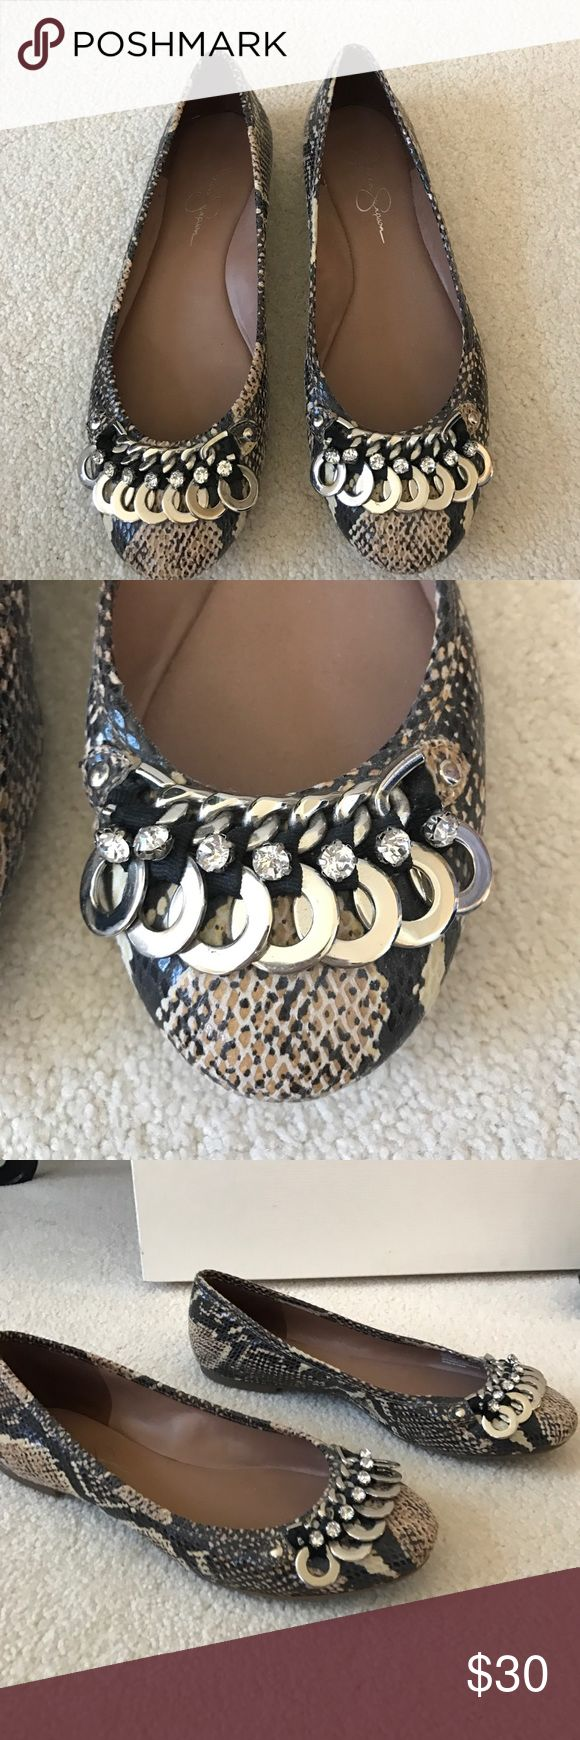 Jessica Simpson Flats Perfect condition!!!! Jessica Simpson flats Jessica Simpson Shoes Flats & Loafers